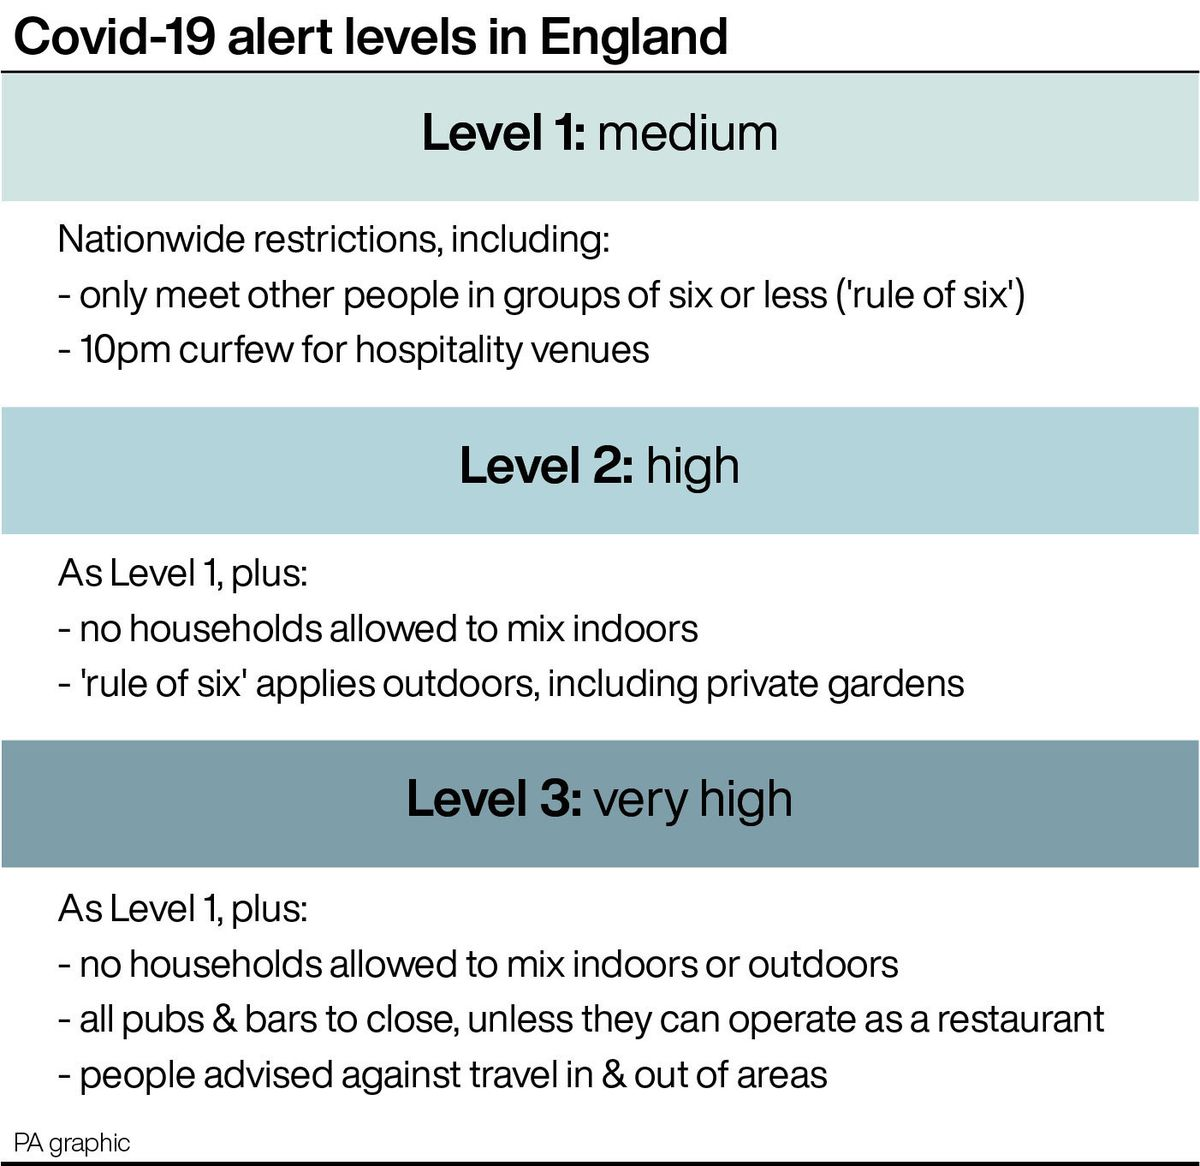 Covid-19 alert levels in England